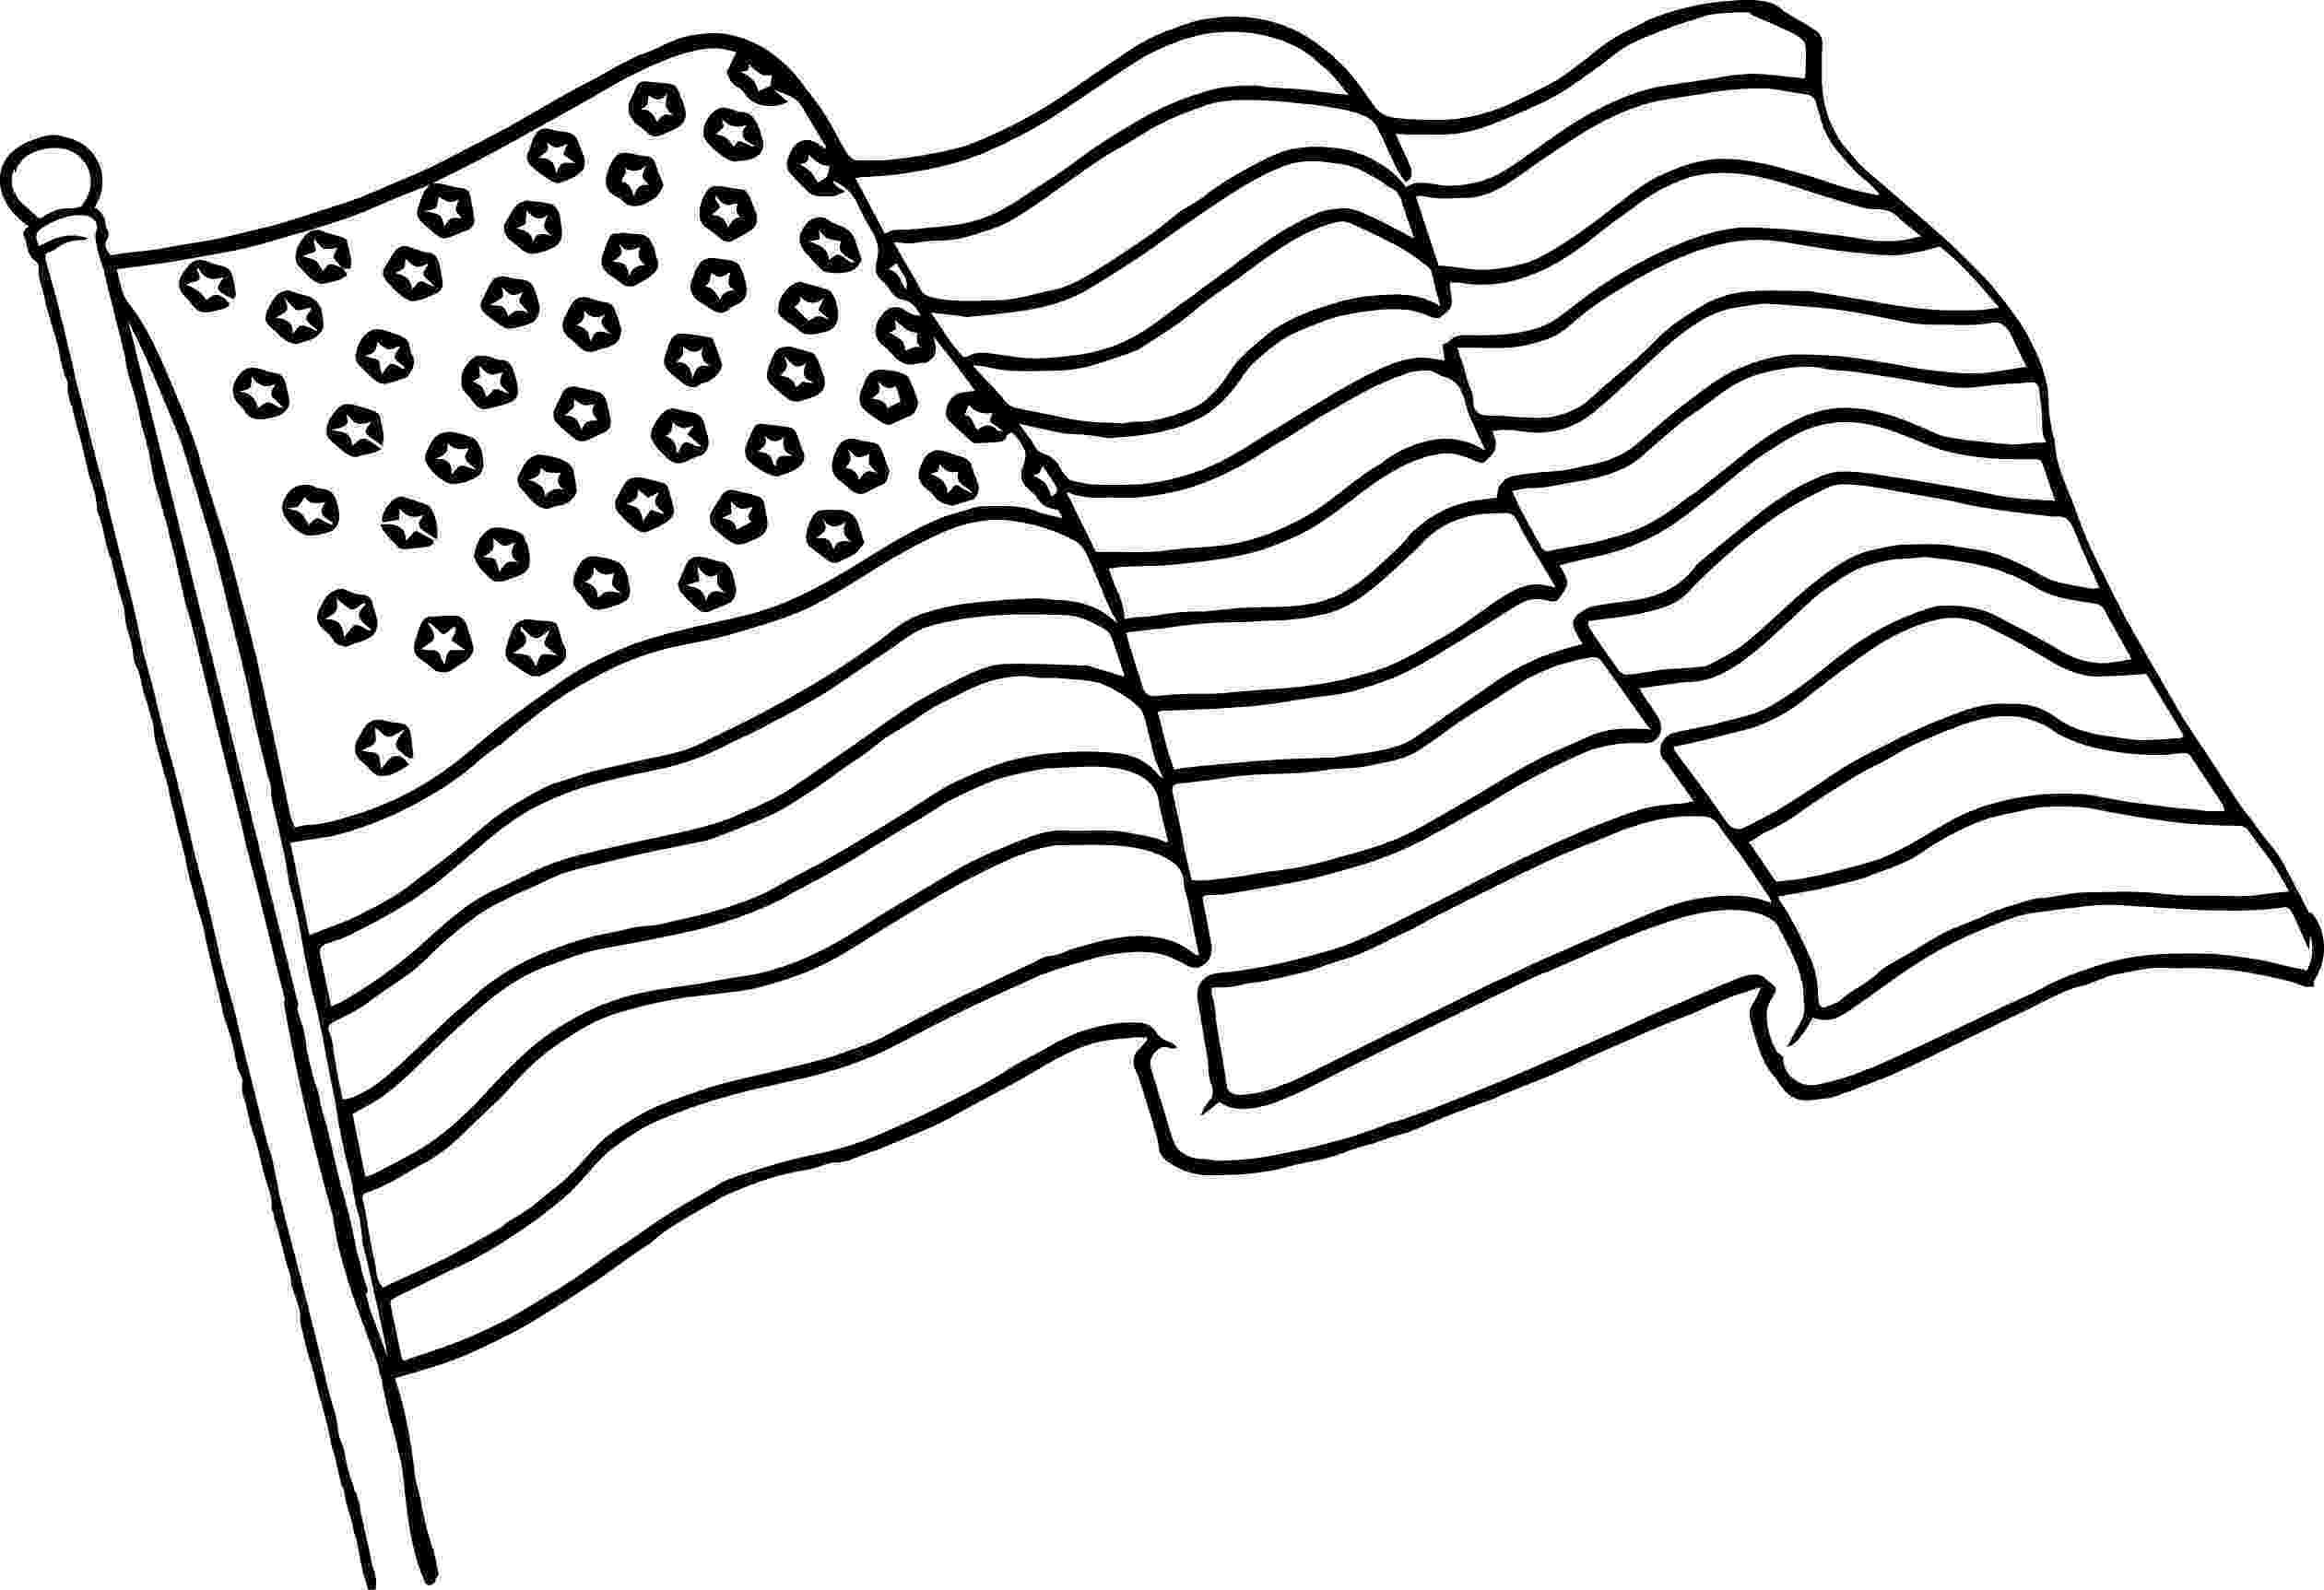 american flag coloring pages american flag coloring page for the love of the country pages coloring american flag